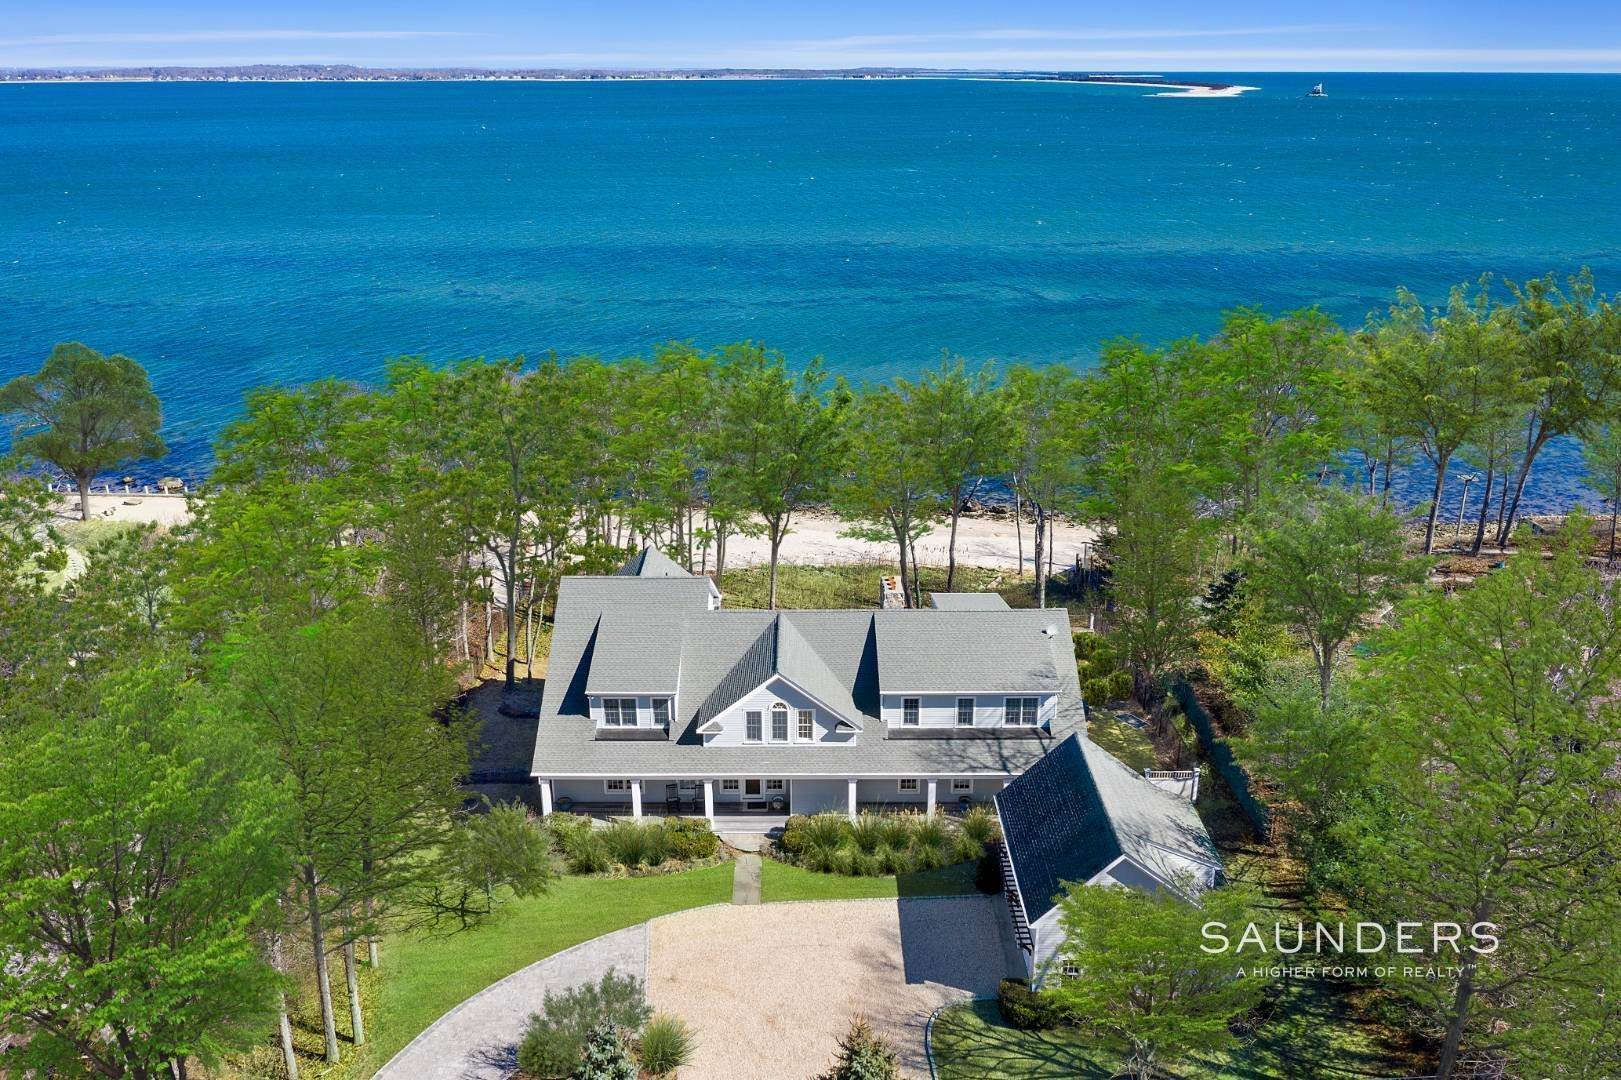 2. Single Family Homes for Sale at Shelter Island Gardiners Bay Beach House With Pool 72 Gardiners Bay Drive, Shelter Island Heights, Shelter Island, NY 11964